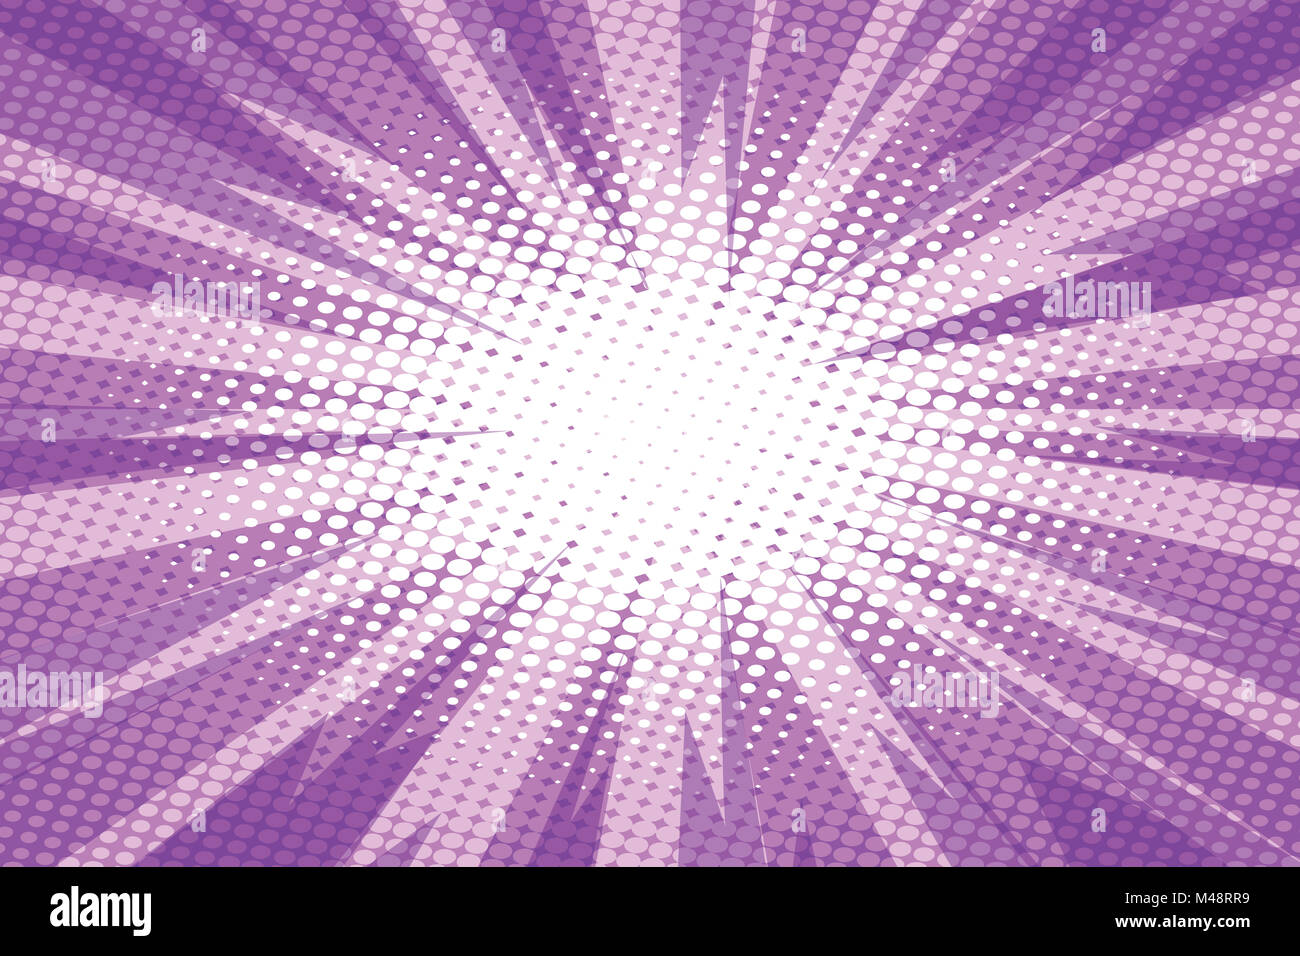 Purple pop art retro burst background - Stock Image